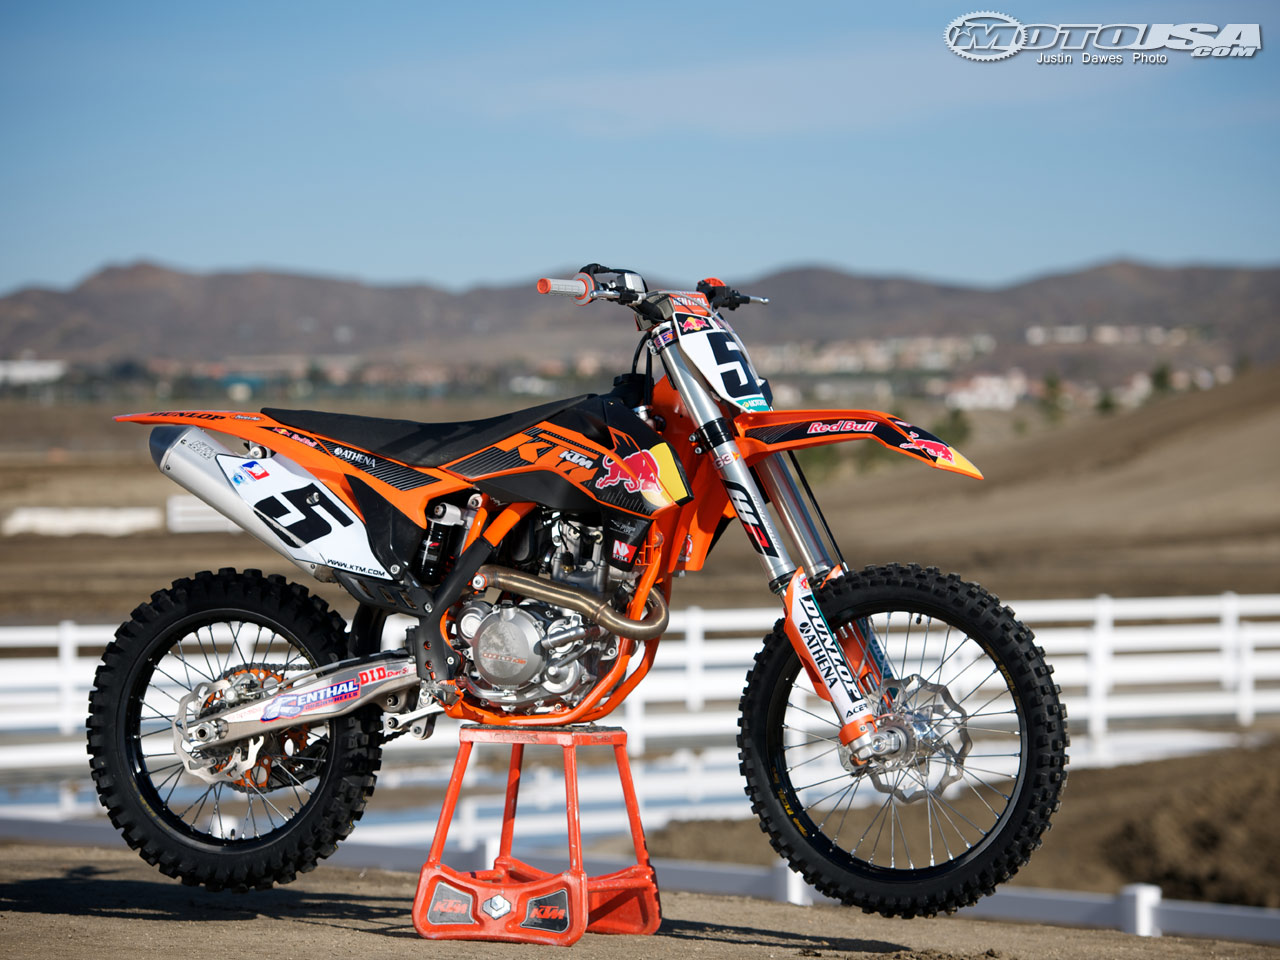 Wiring Diagram 06 Ktm 450 Sx Free For You 2003 Ford E 2012 F Pics Specs And Information 2002 Headlight Ambulance